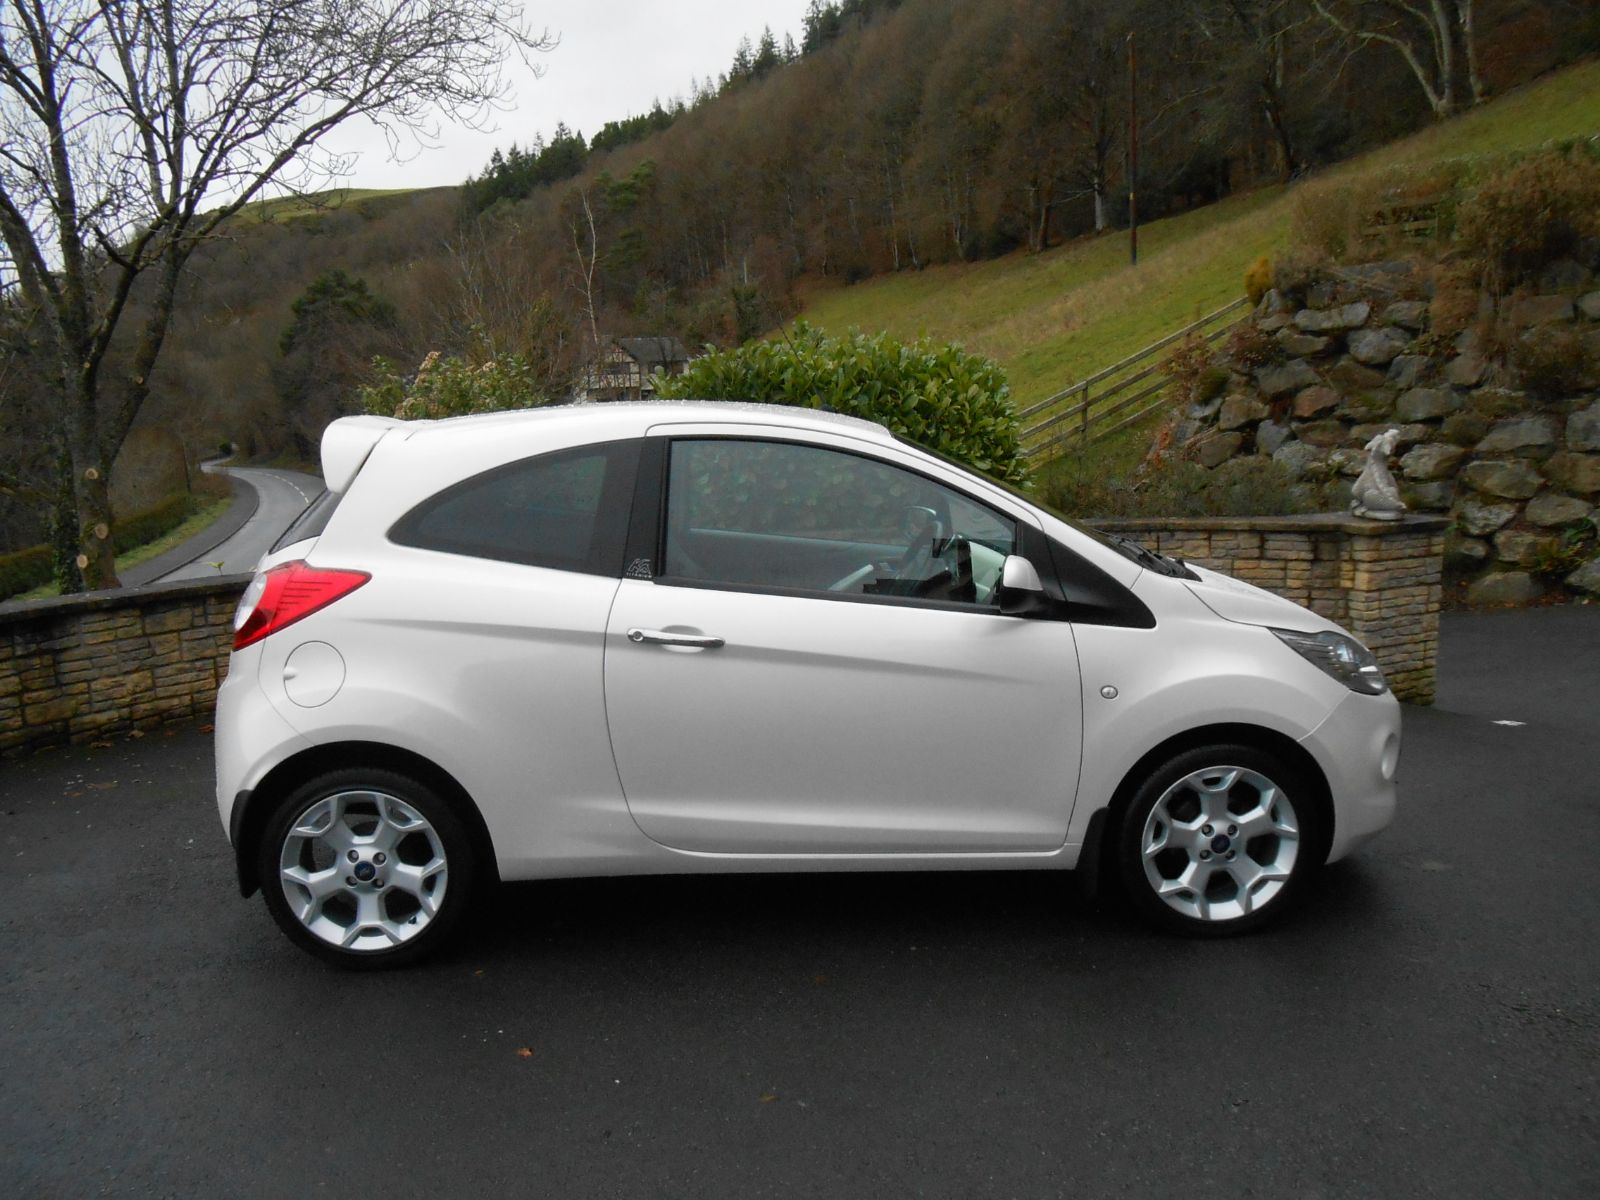 ford ka 1 2 titanium car for sale llanidloes powys mid wales kevin jones cars used cars specialist. Black Bedroom Furniture Sets. Home Design Ideas